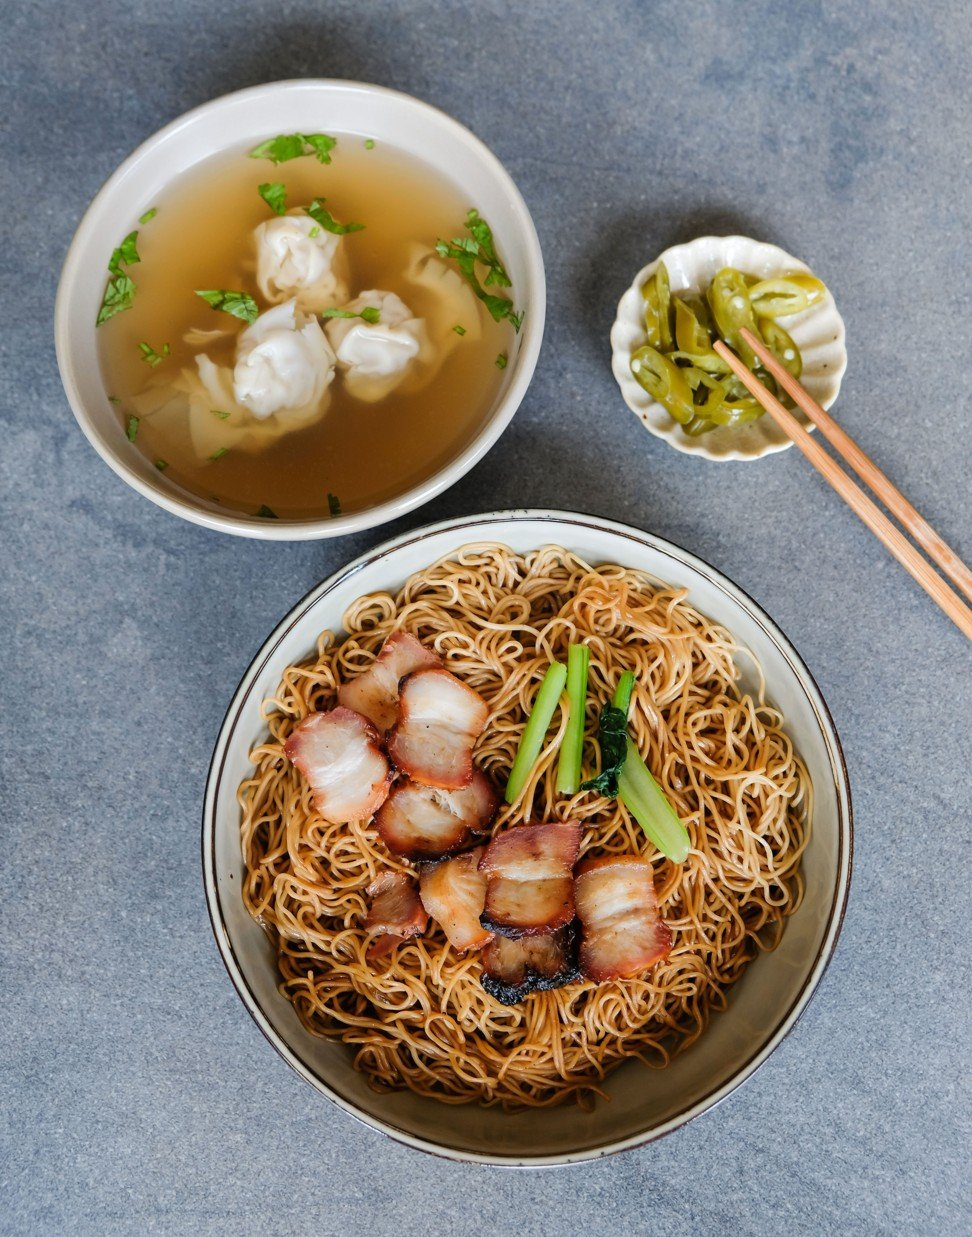 How does Hong Kong's version of wonton noodles compare with Singapore's or Malaysia's?